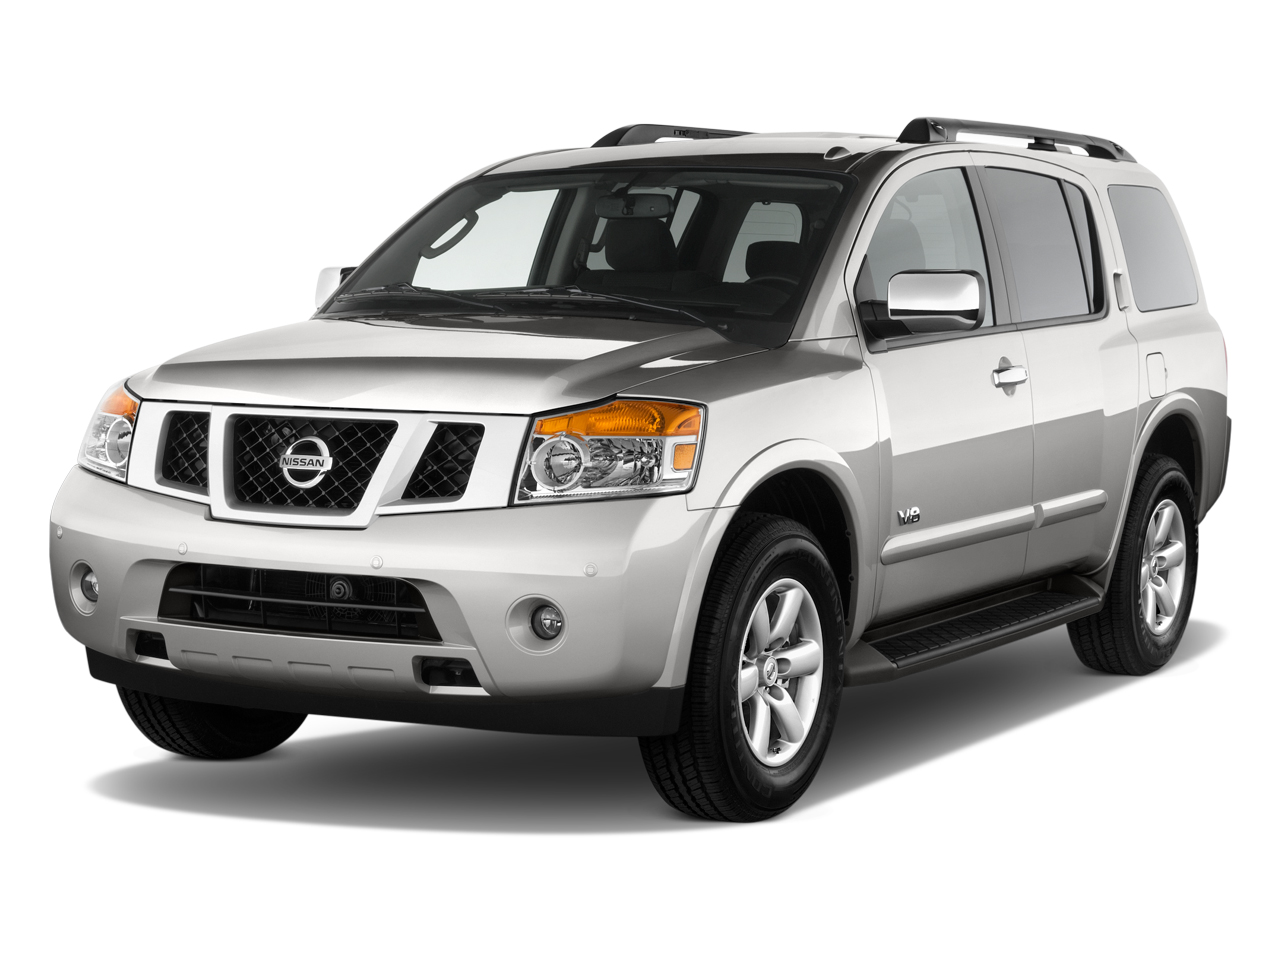 2016 nissan armada platinum pictures car interior design. Black Bedroom Furniture Sets. Home Design Ideas